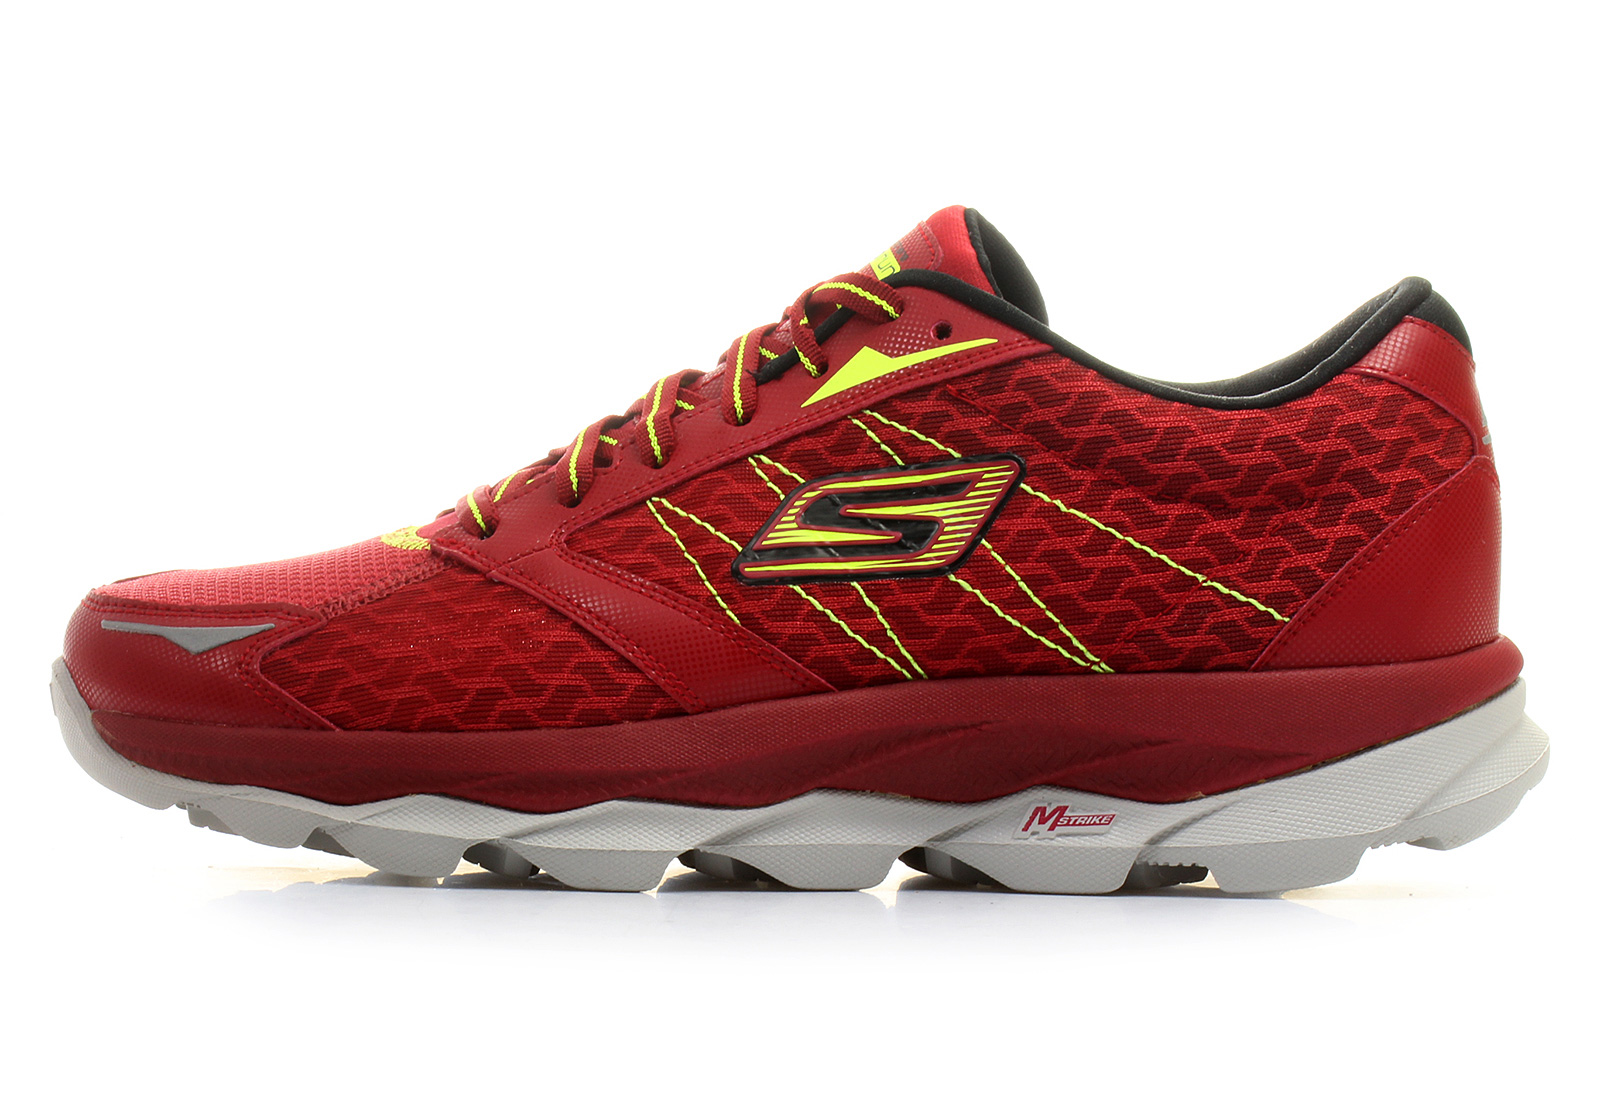 Skechers Shoes - Go Run Ultra - 53915-rdlm - Online Shop For Sneakers Shoes And Boots